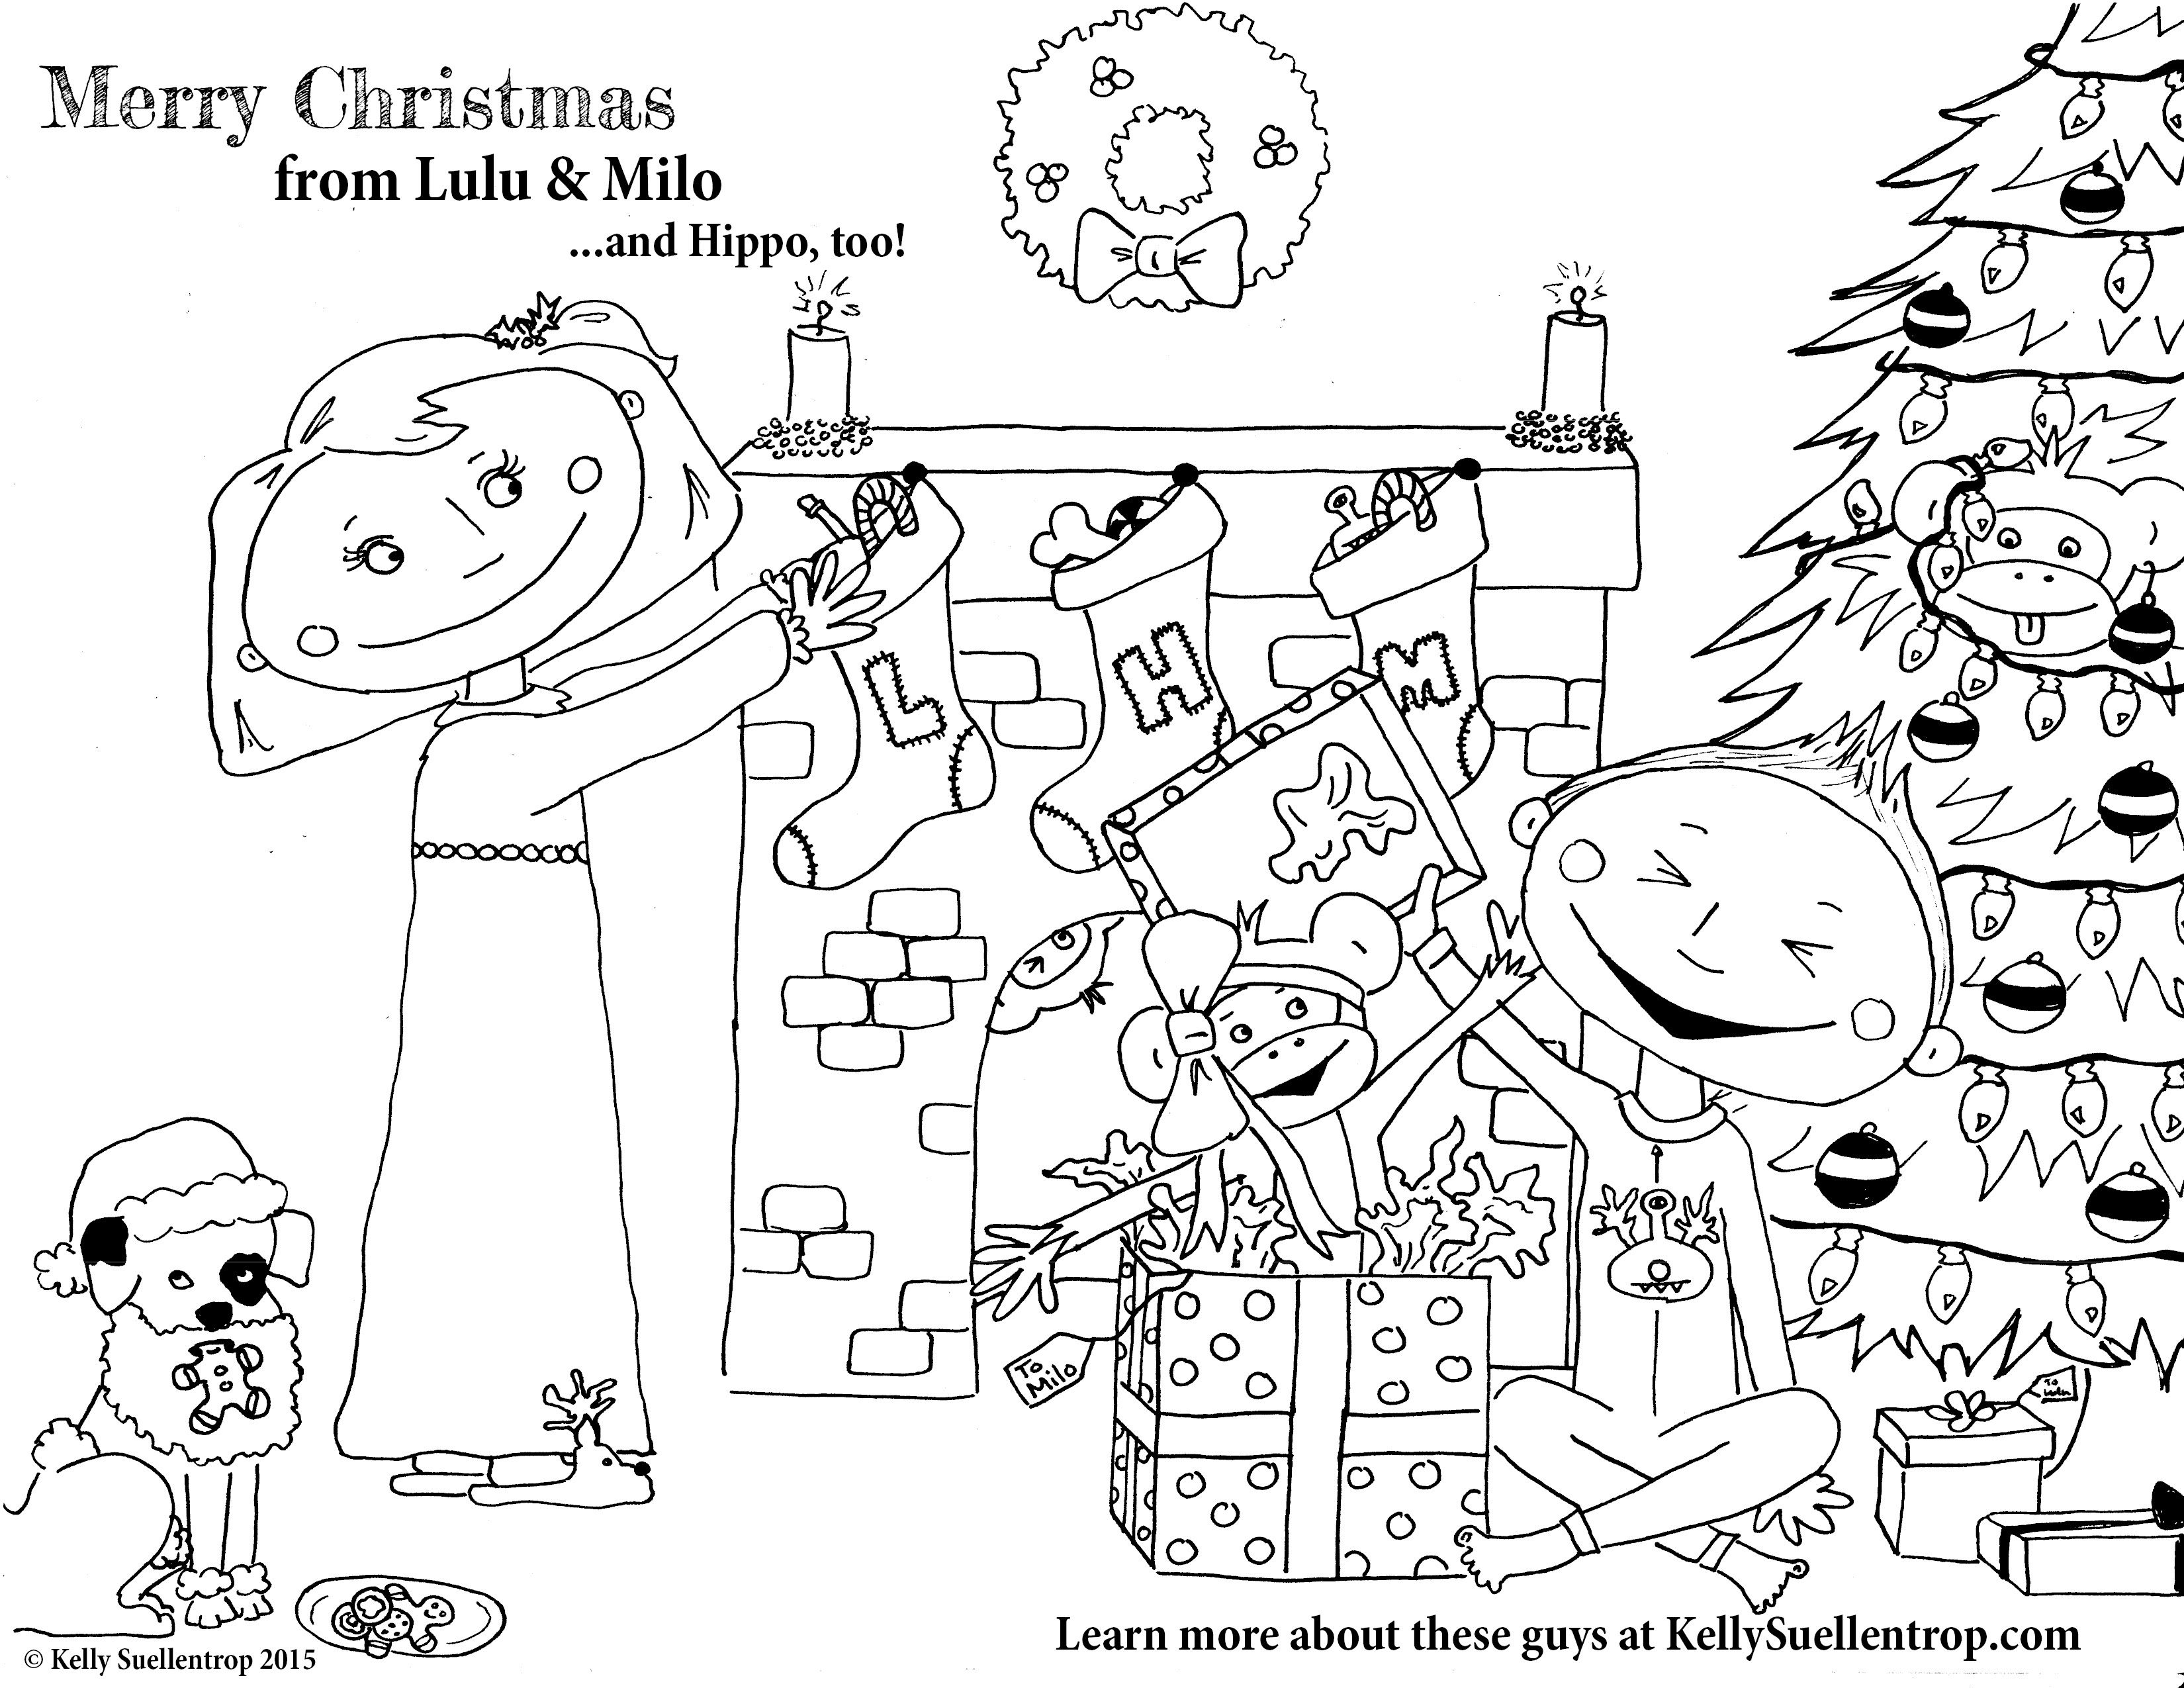 Sprinkler Coloring Coloring Pages